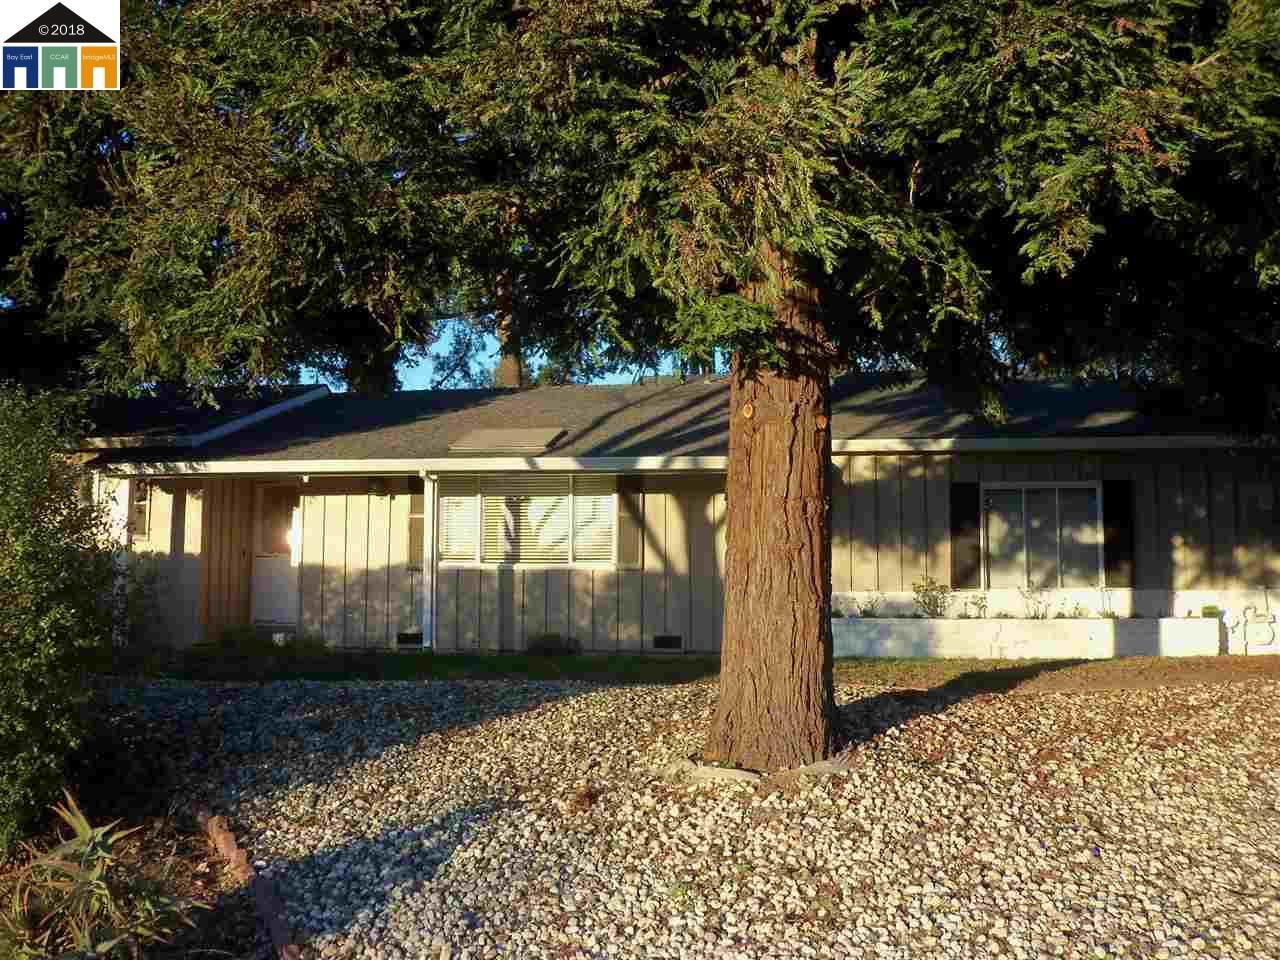 Single Family Home for Rent at 3387 W Terrace 3387 W Terrace Lafayette, California 94549 United States